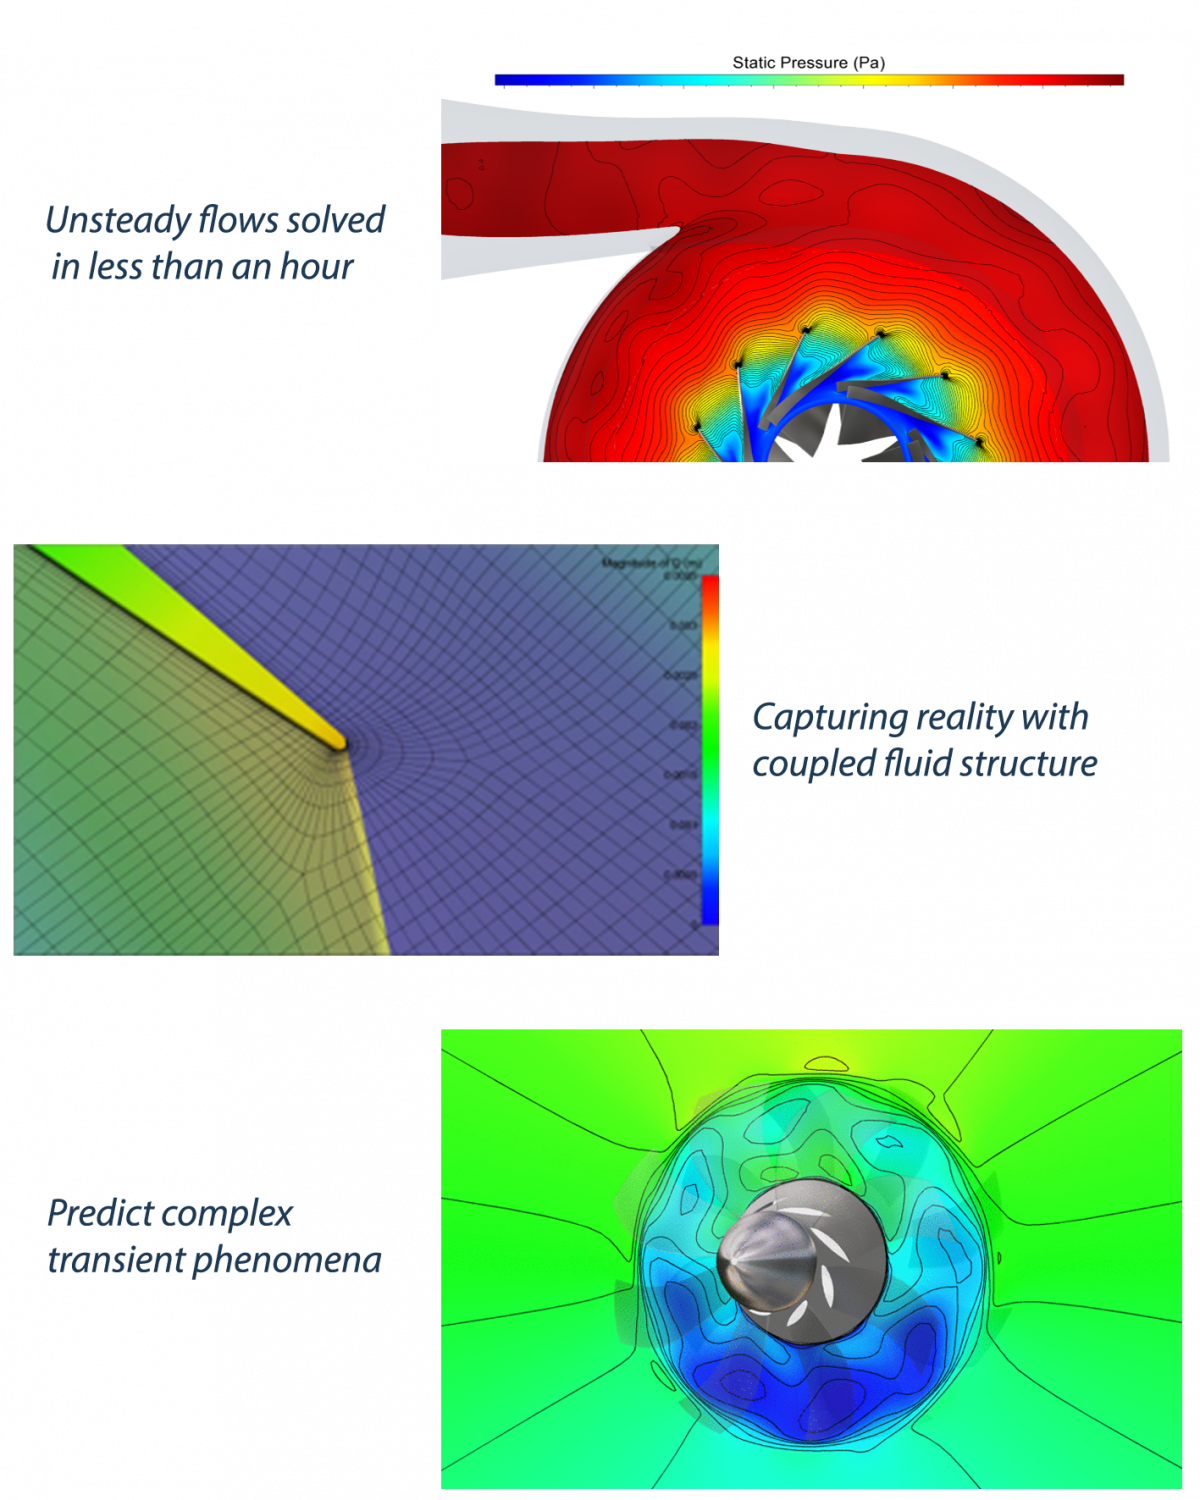 Numeca International On This Turbocharger Diagram You Can See How The Impeller Connects Make Your Simulations Go Even Faster With Hpc Performance Both Cpu And Gpu Factor 2 To 25 Single Card